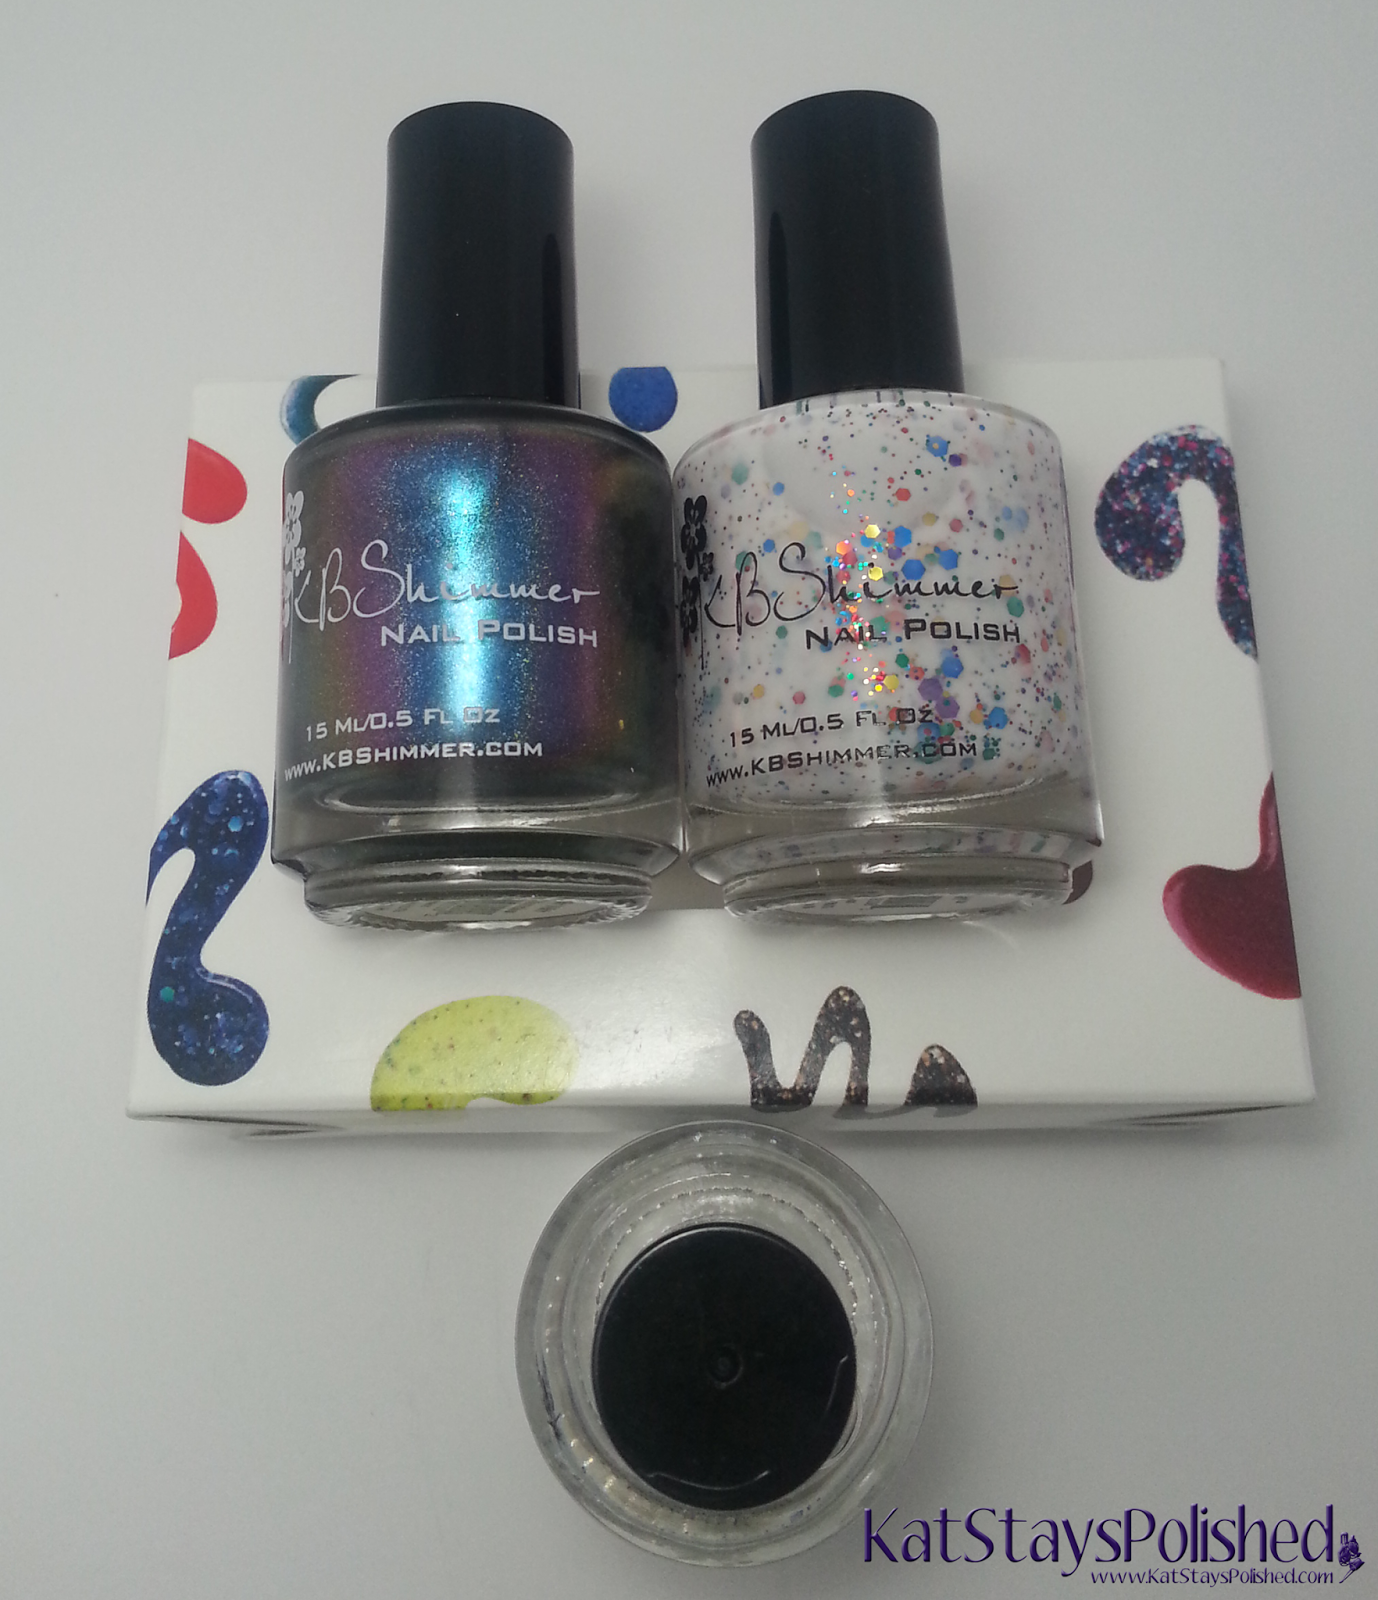 KBShimmer - Rollin' With the Chromies, Clearly on Top, Oh Splat! | Kat Stays Polished